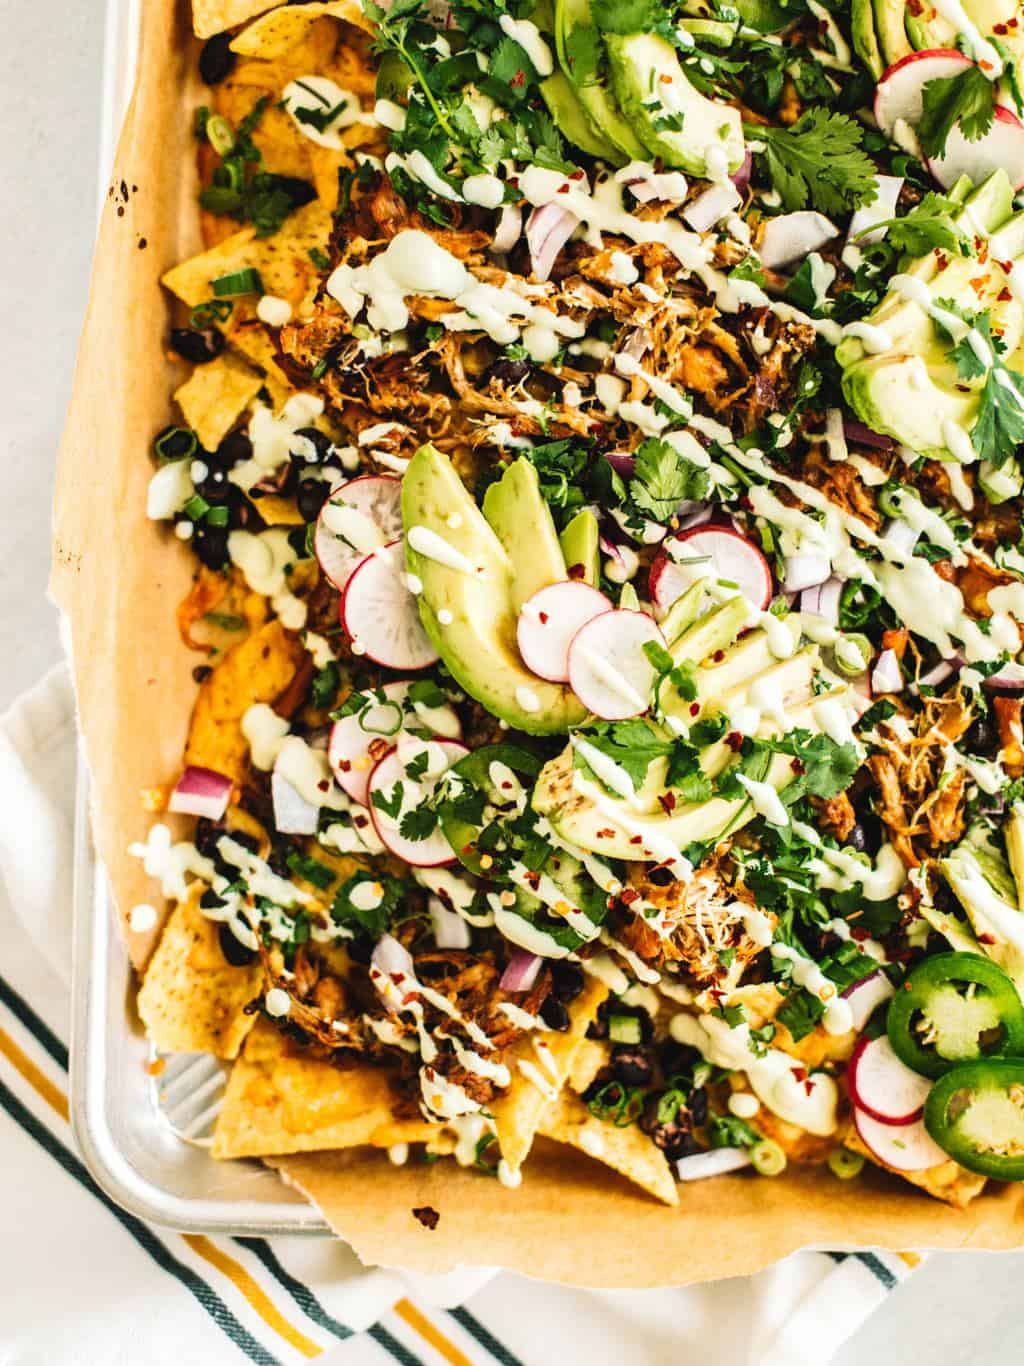 Insanely flavorful and juicy Jacuzzi chicken nachos. These nachos are topped with shredded chipotle Jacuzzi chicken and avocado crema + all the toppings! Did someone say Super Bowl food coma!?